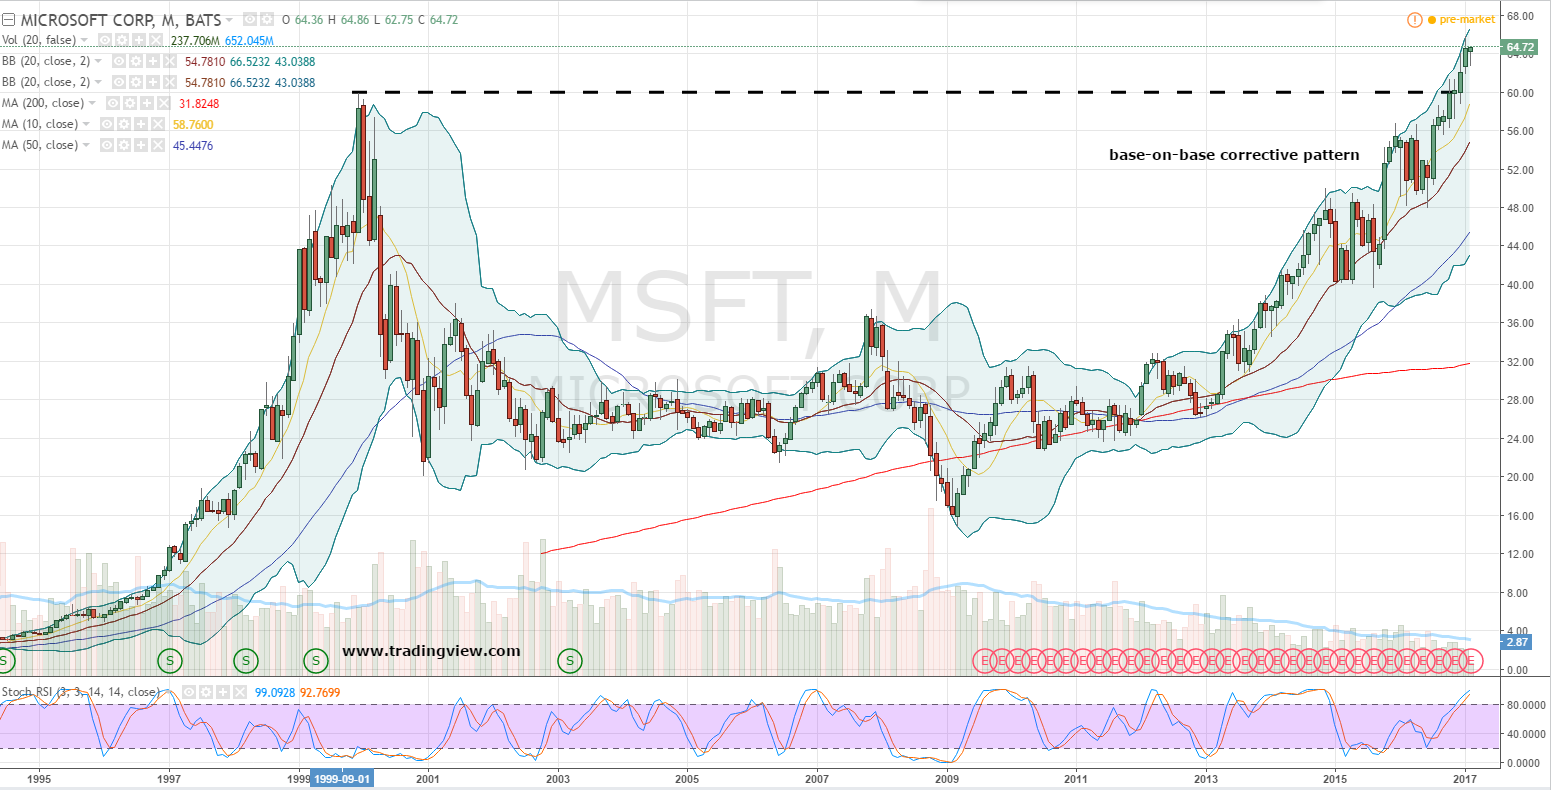 Analysts believe Microsoft Corporation (NASDAQ:MSFT) is worth $68.97 per share